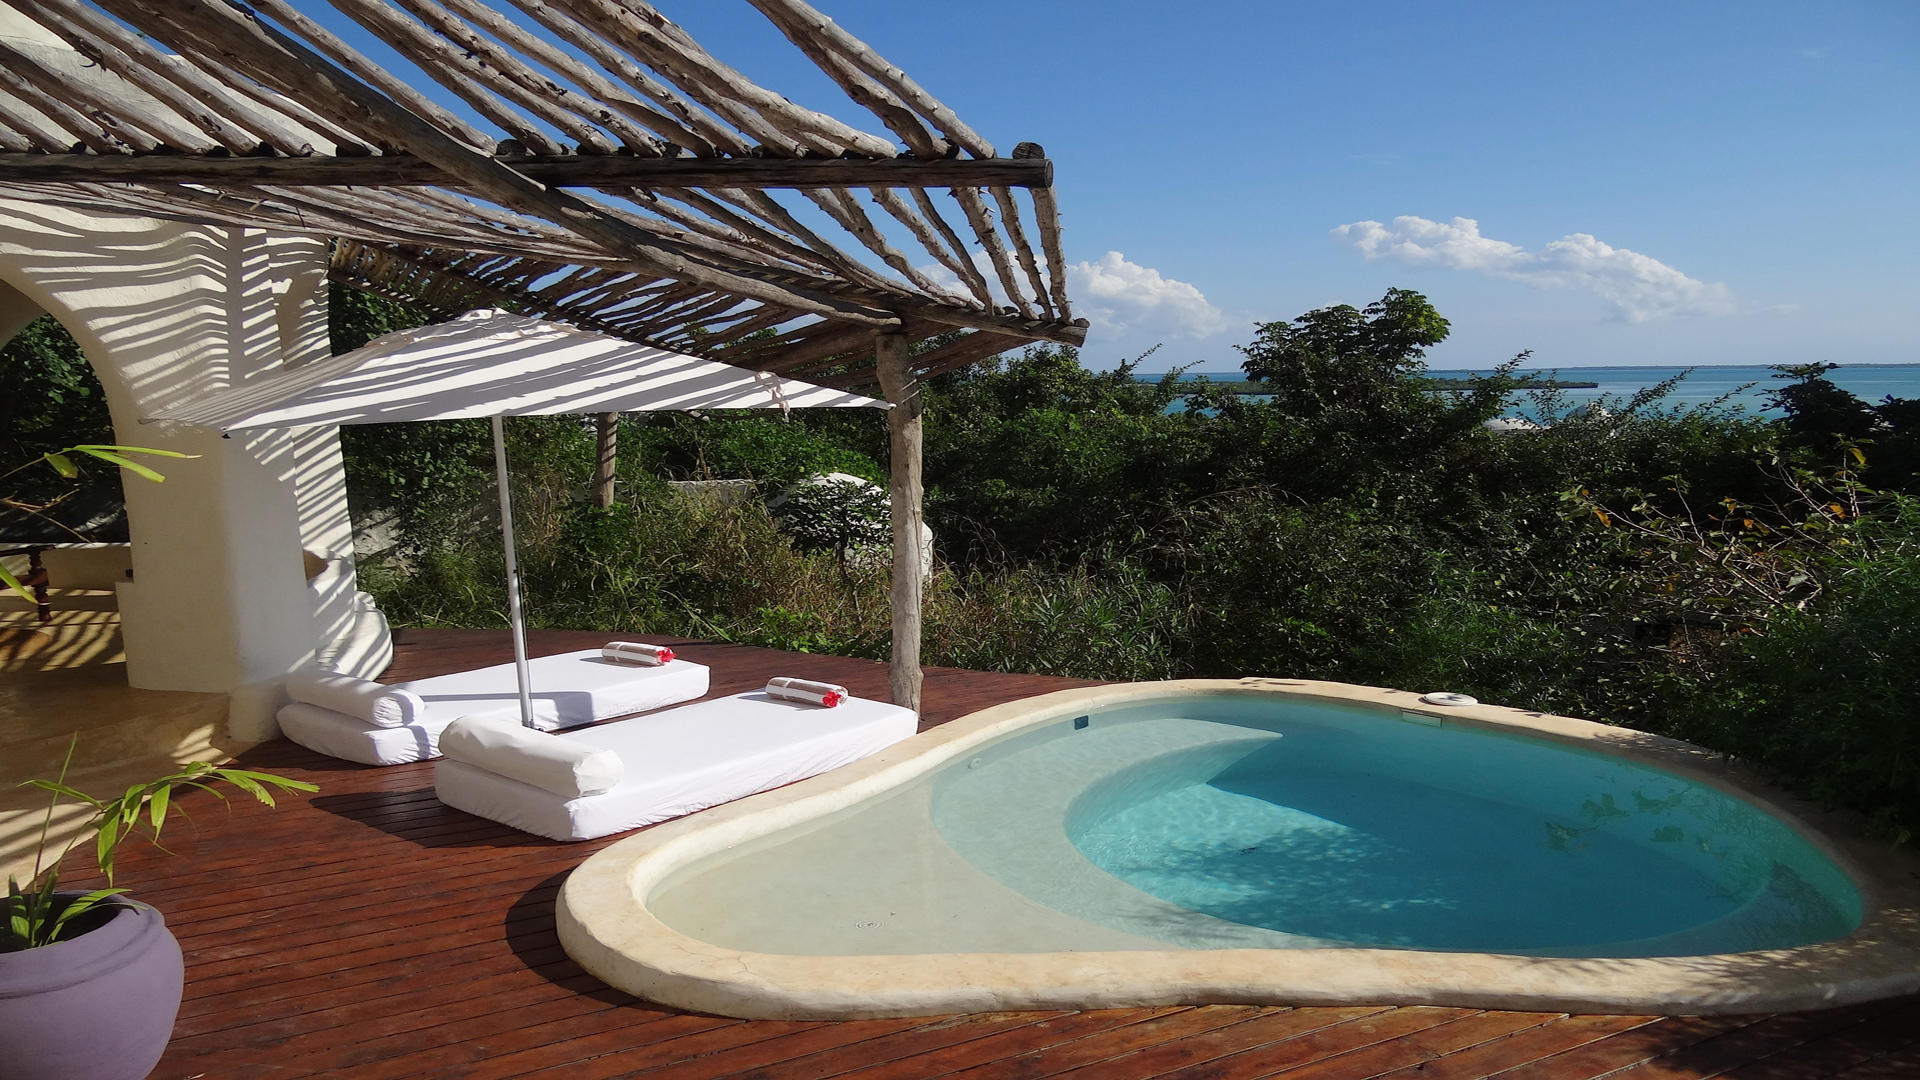 Kilindi-Zanzibar---Room---Private-Terrace-with-plunge-pool-